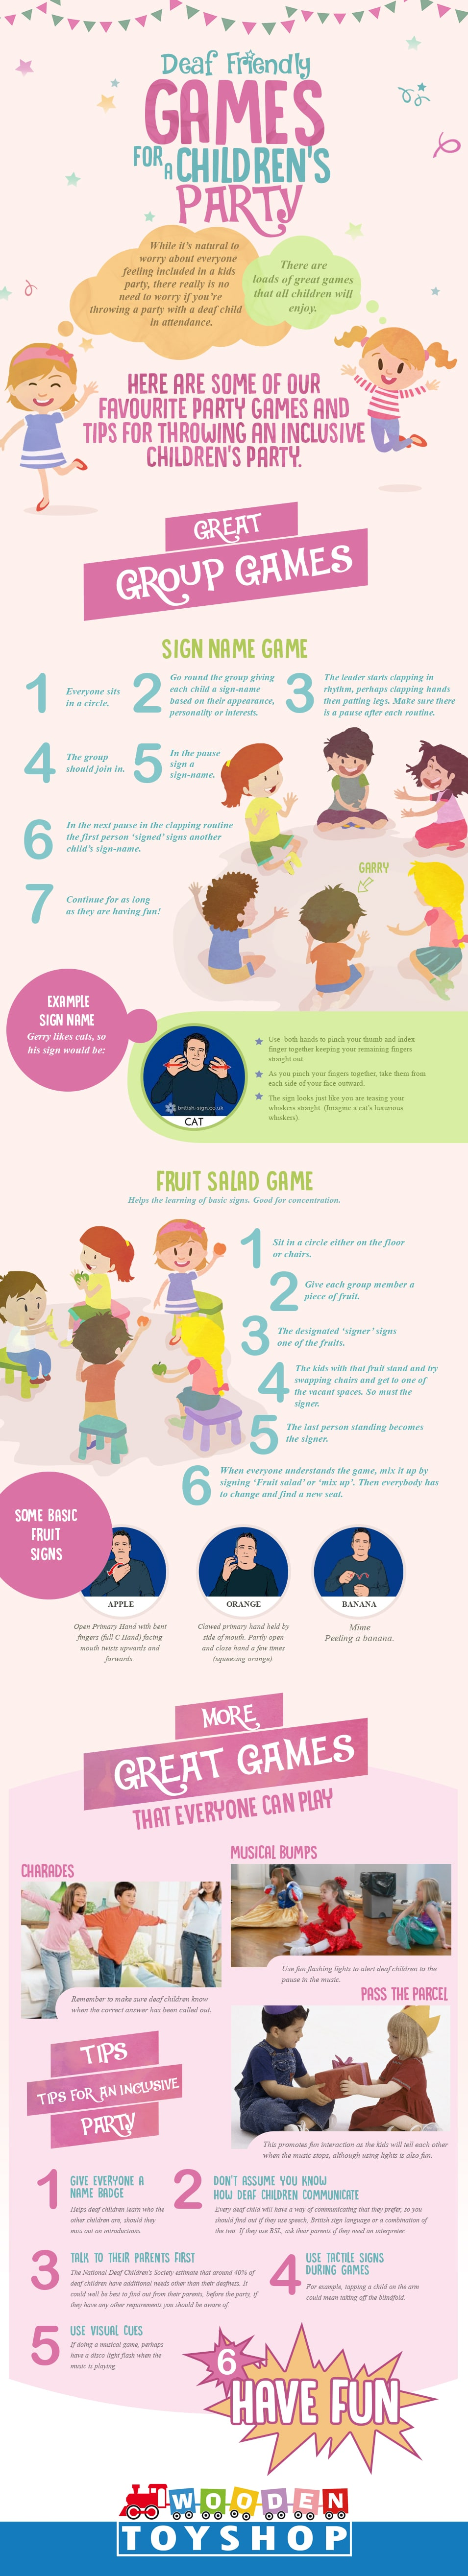 Deaf Children's Party Games [Infographic]